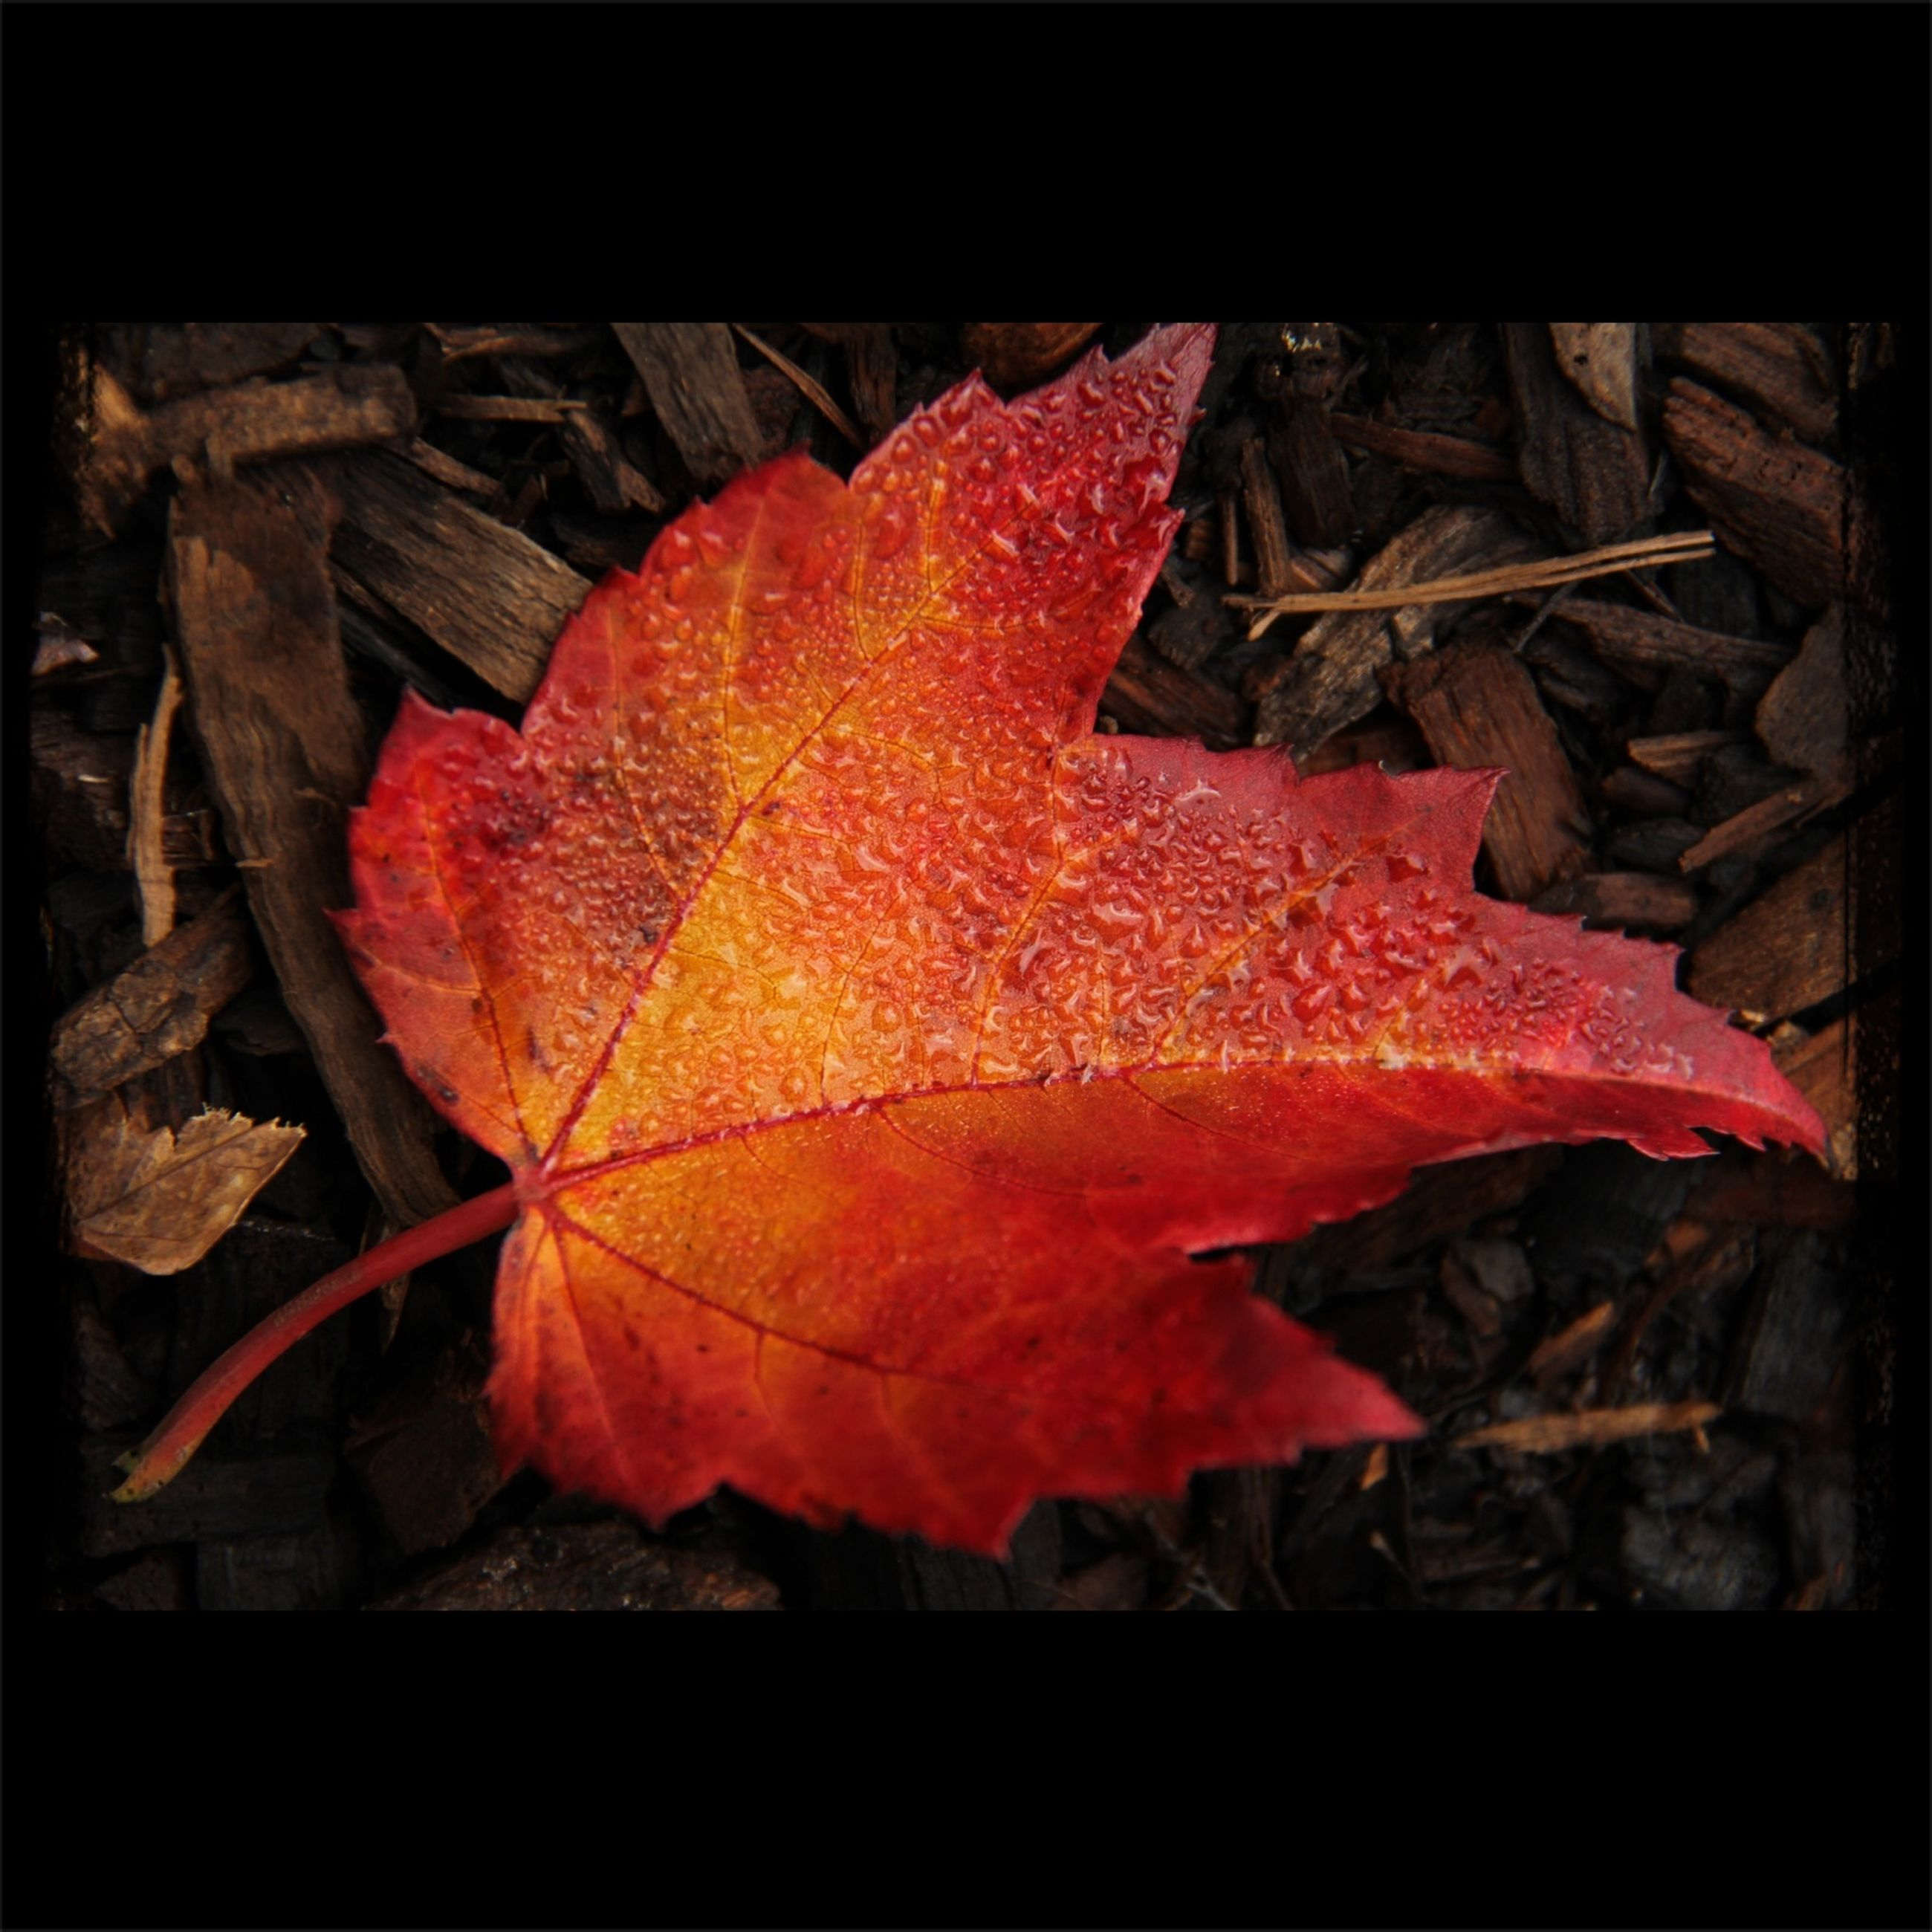 autumn, leaf, change, maple leaf, close-up, season, leaf vein, leaves, dry, orange color, transfer print, auto post production filter, red, natural pattern, fragility, fallen, nature, high angle view, aging process, outdoors